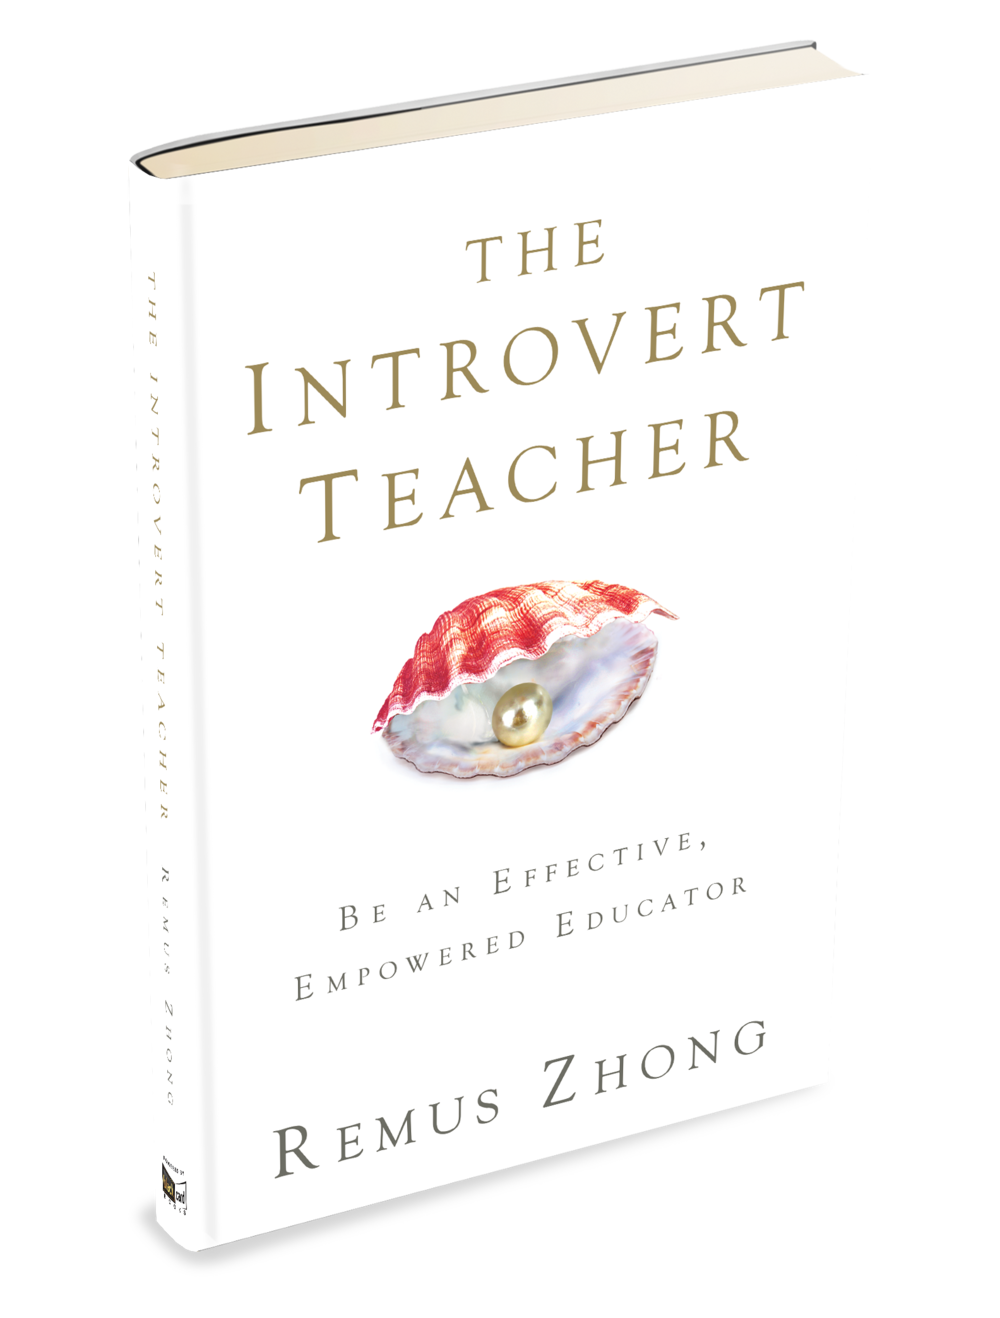 The Introvert Teacher Book Cover